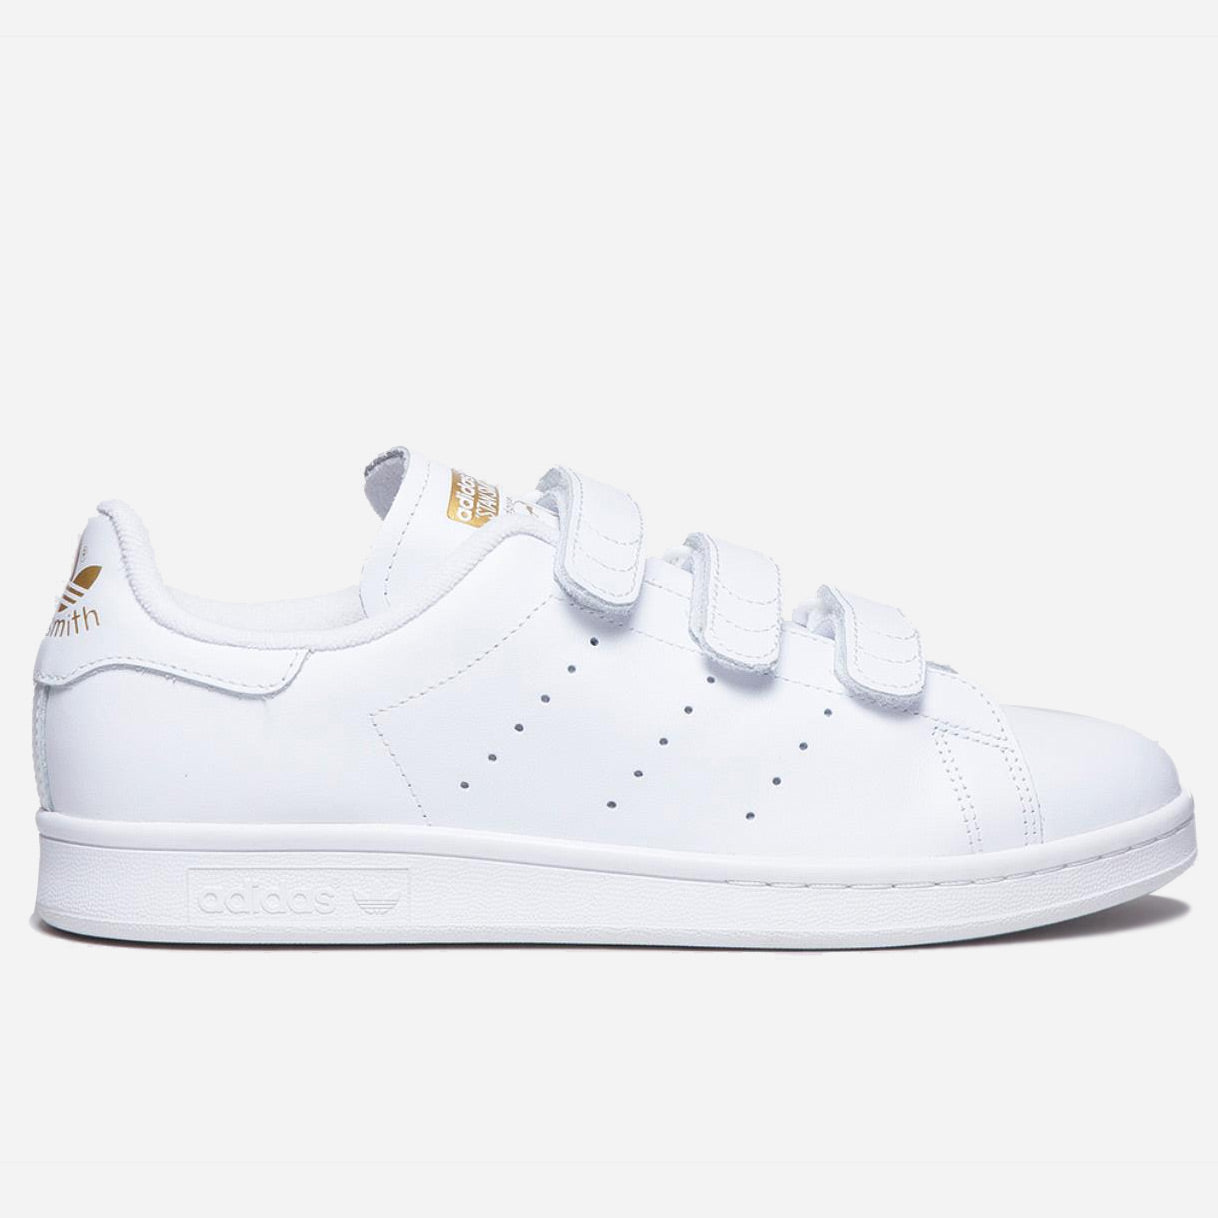 reputable site fbf83 b1f45 adidas Stan Smith CF White Gold Metal